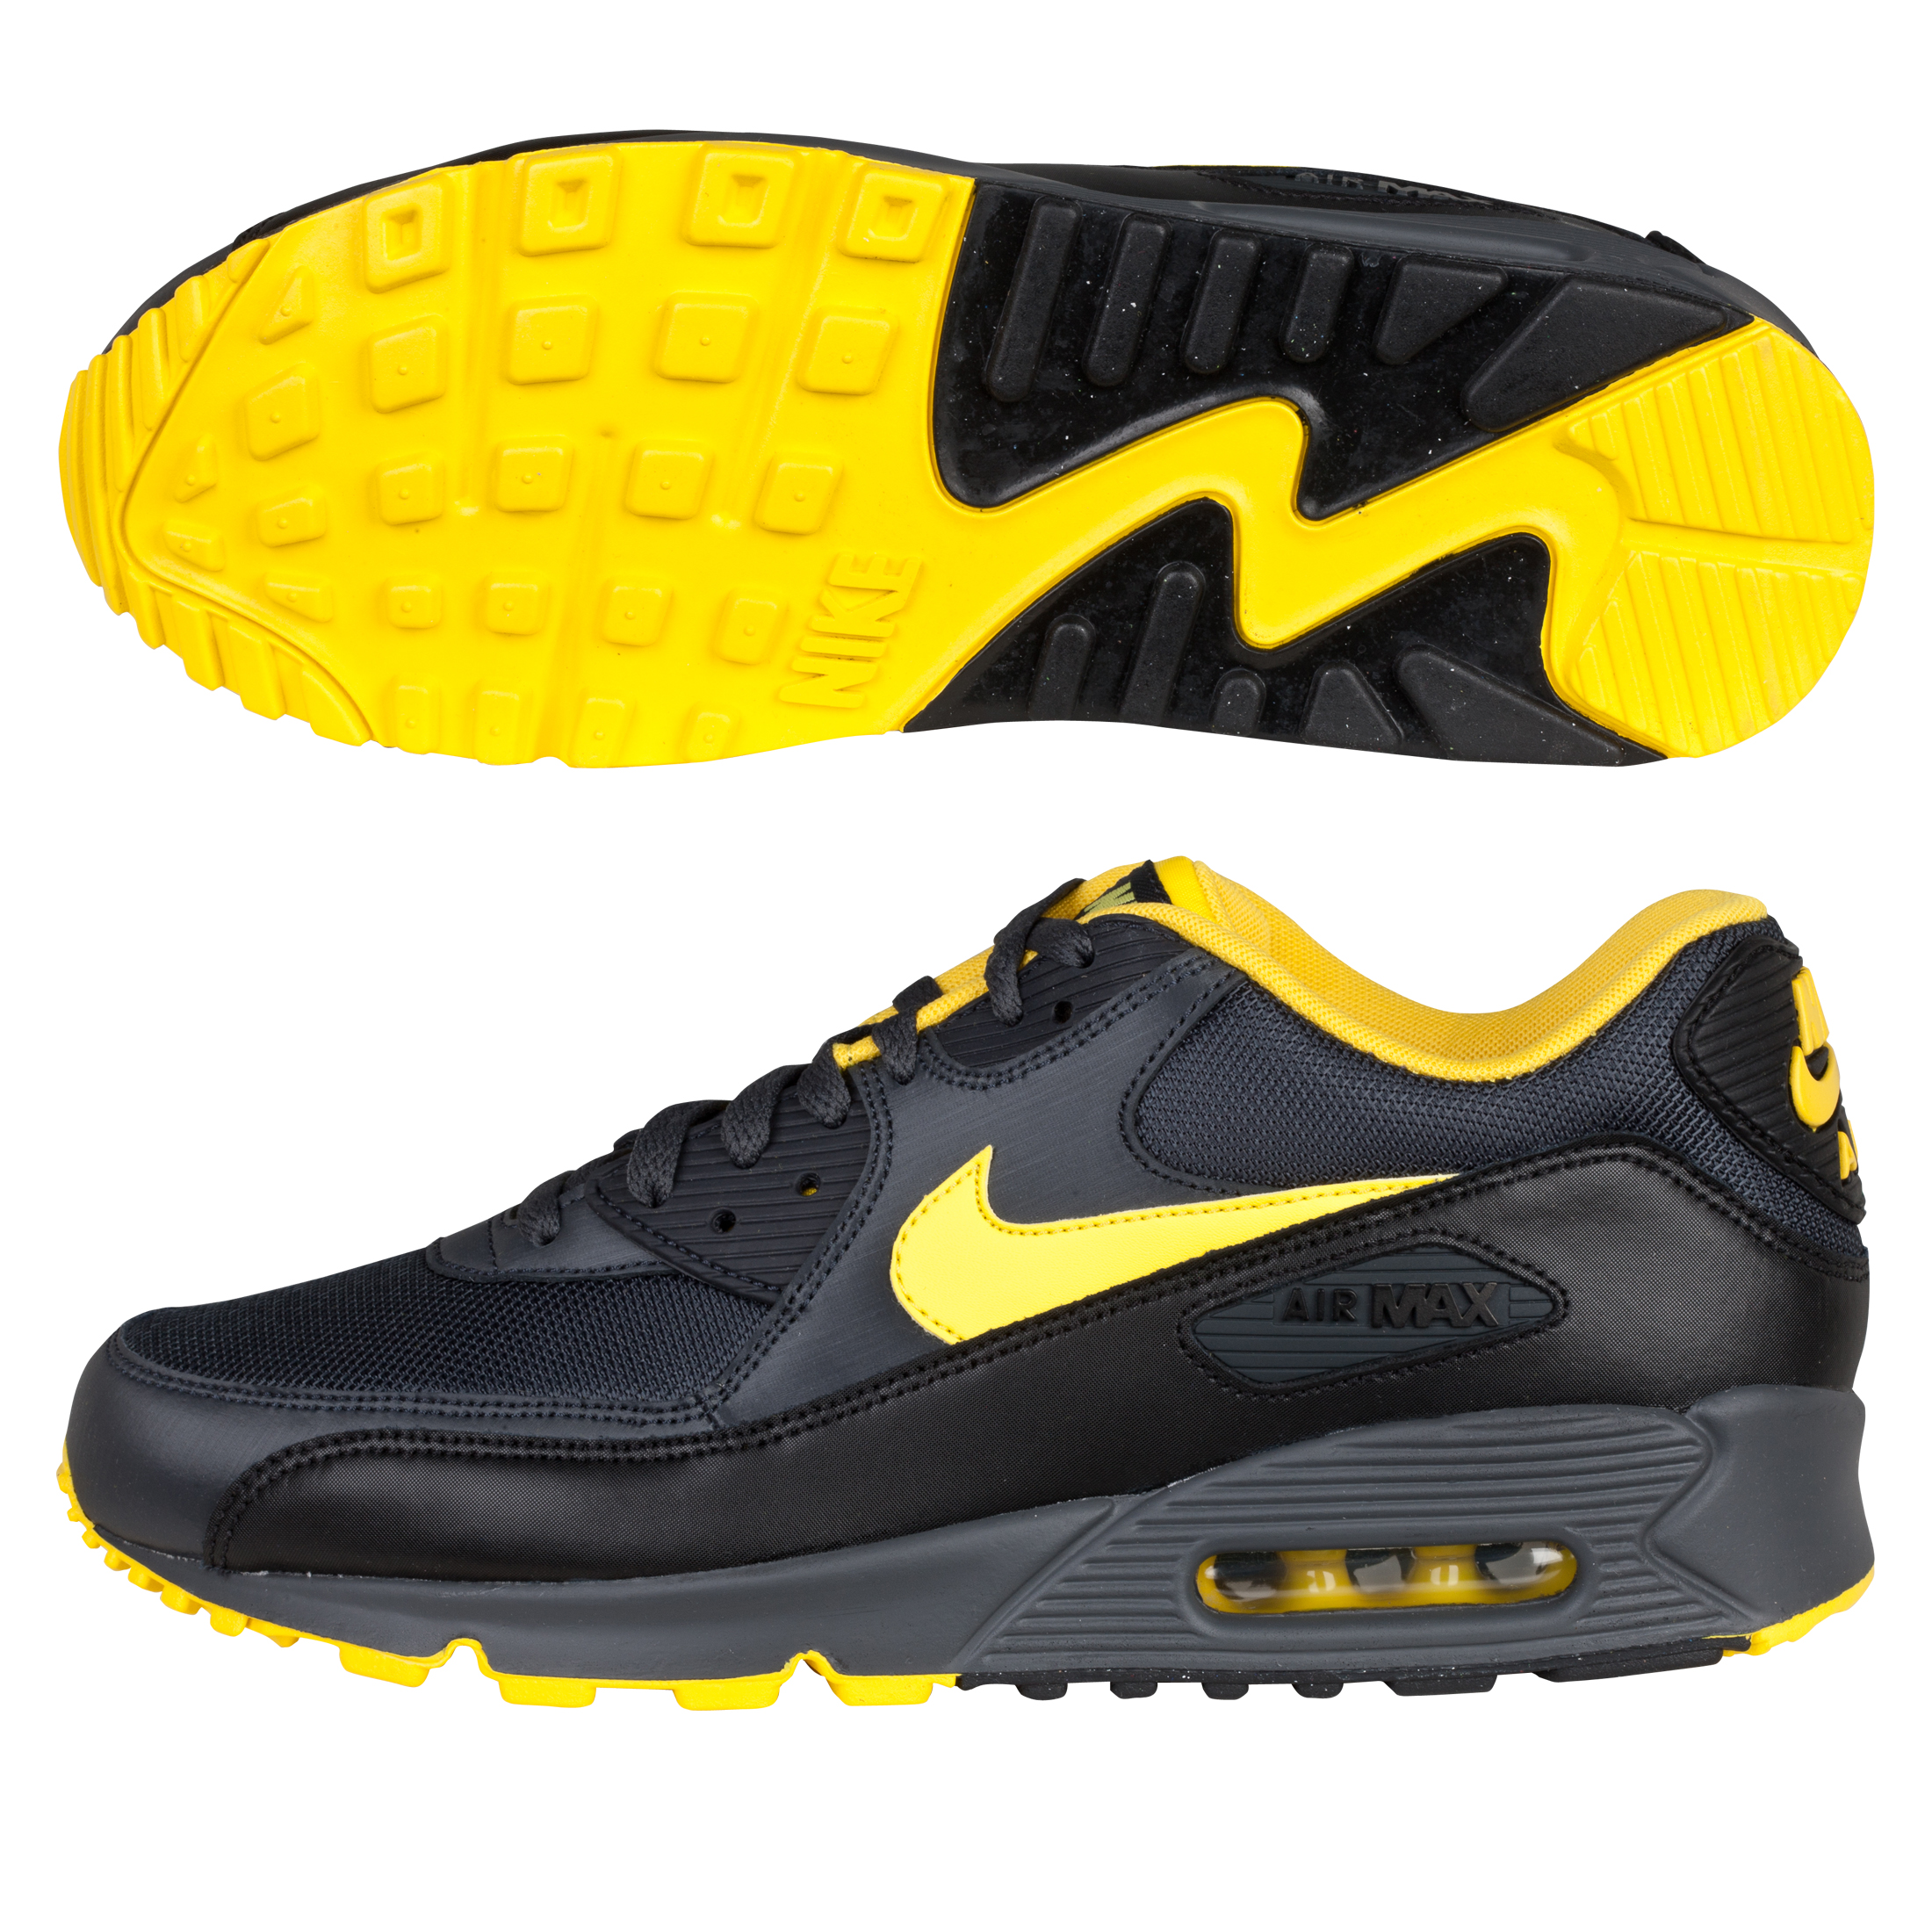 Nike Air Max 90 '08 Trainers - Anthracite/Speed Yellow/Black/Natural Grey